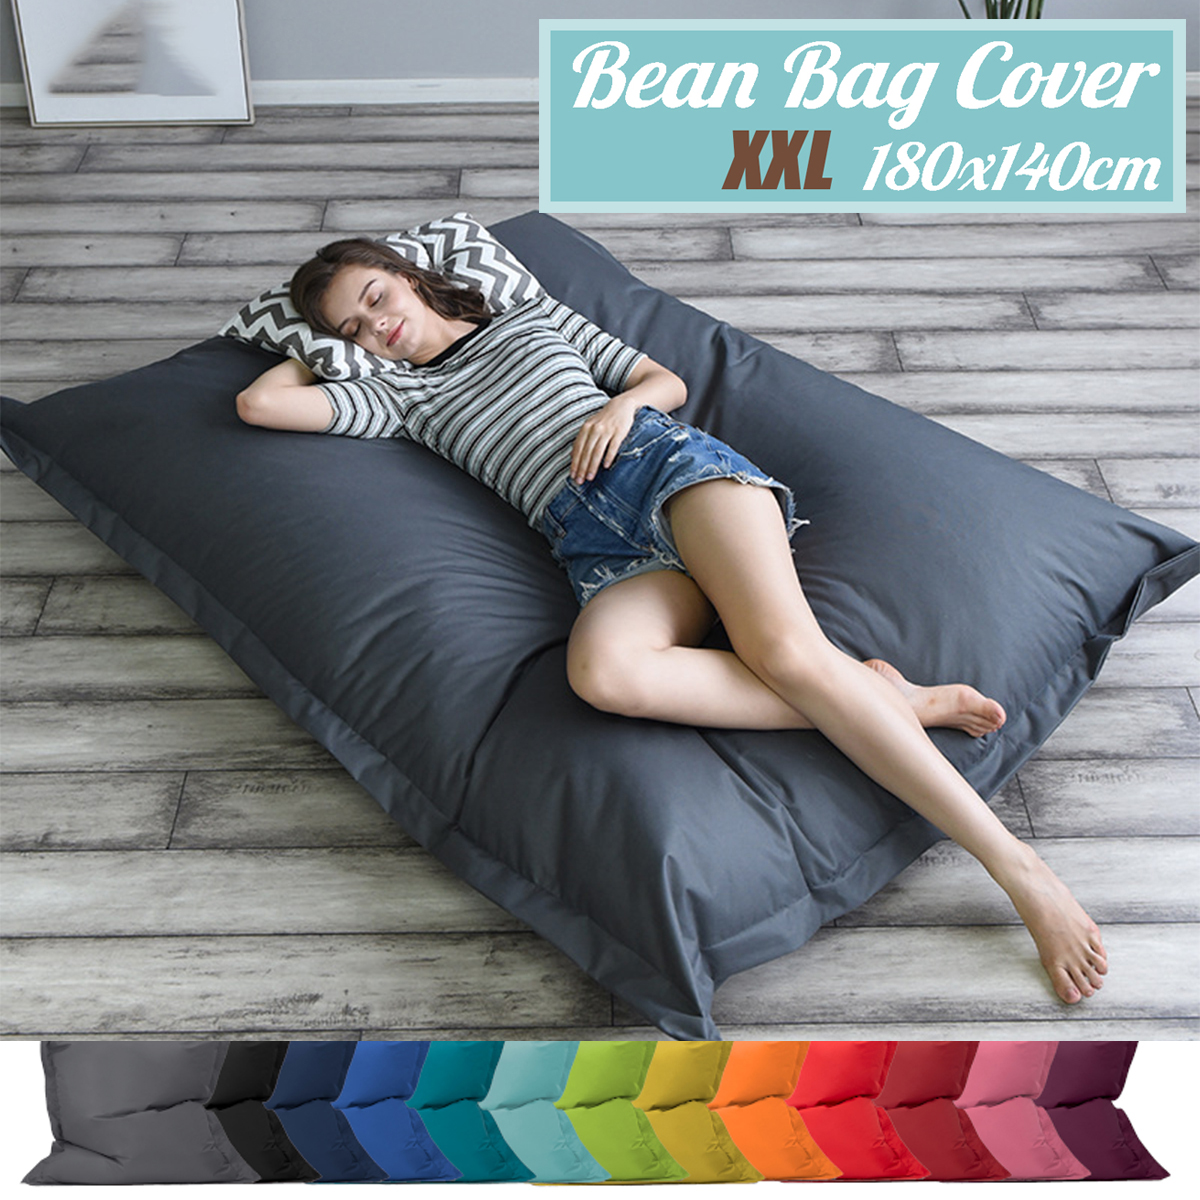 Cover only No Filler Beanbag Sofa Chair Magic Bag Seat Cases Comfort Bean Bag Bed Cover Waterproof Indoor Beanbag Lounge Chair title=